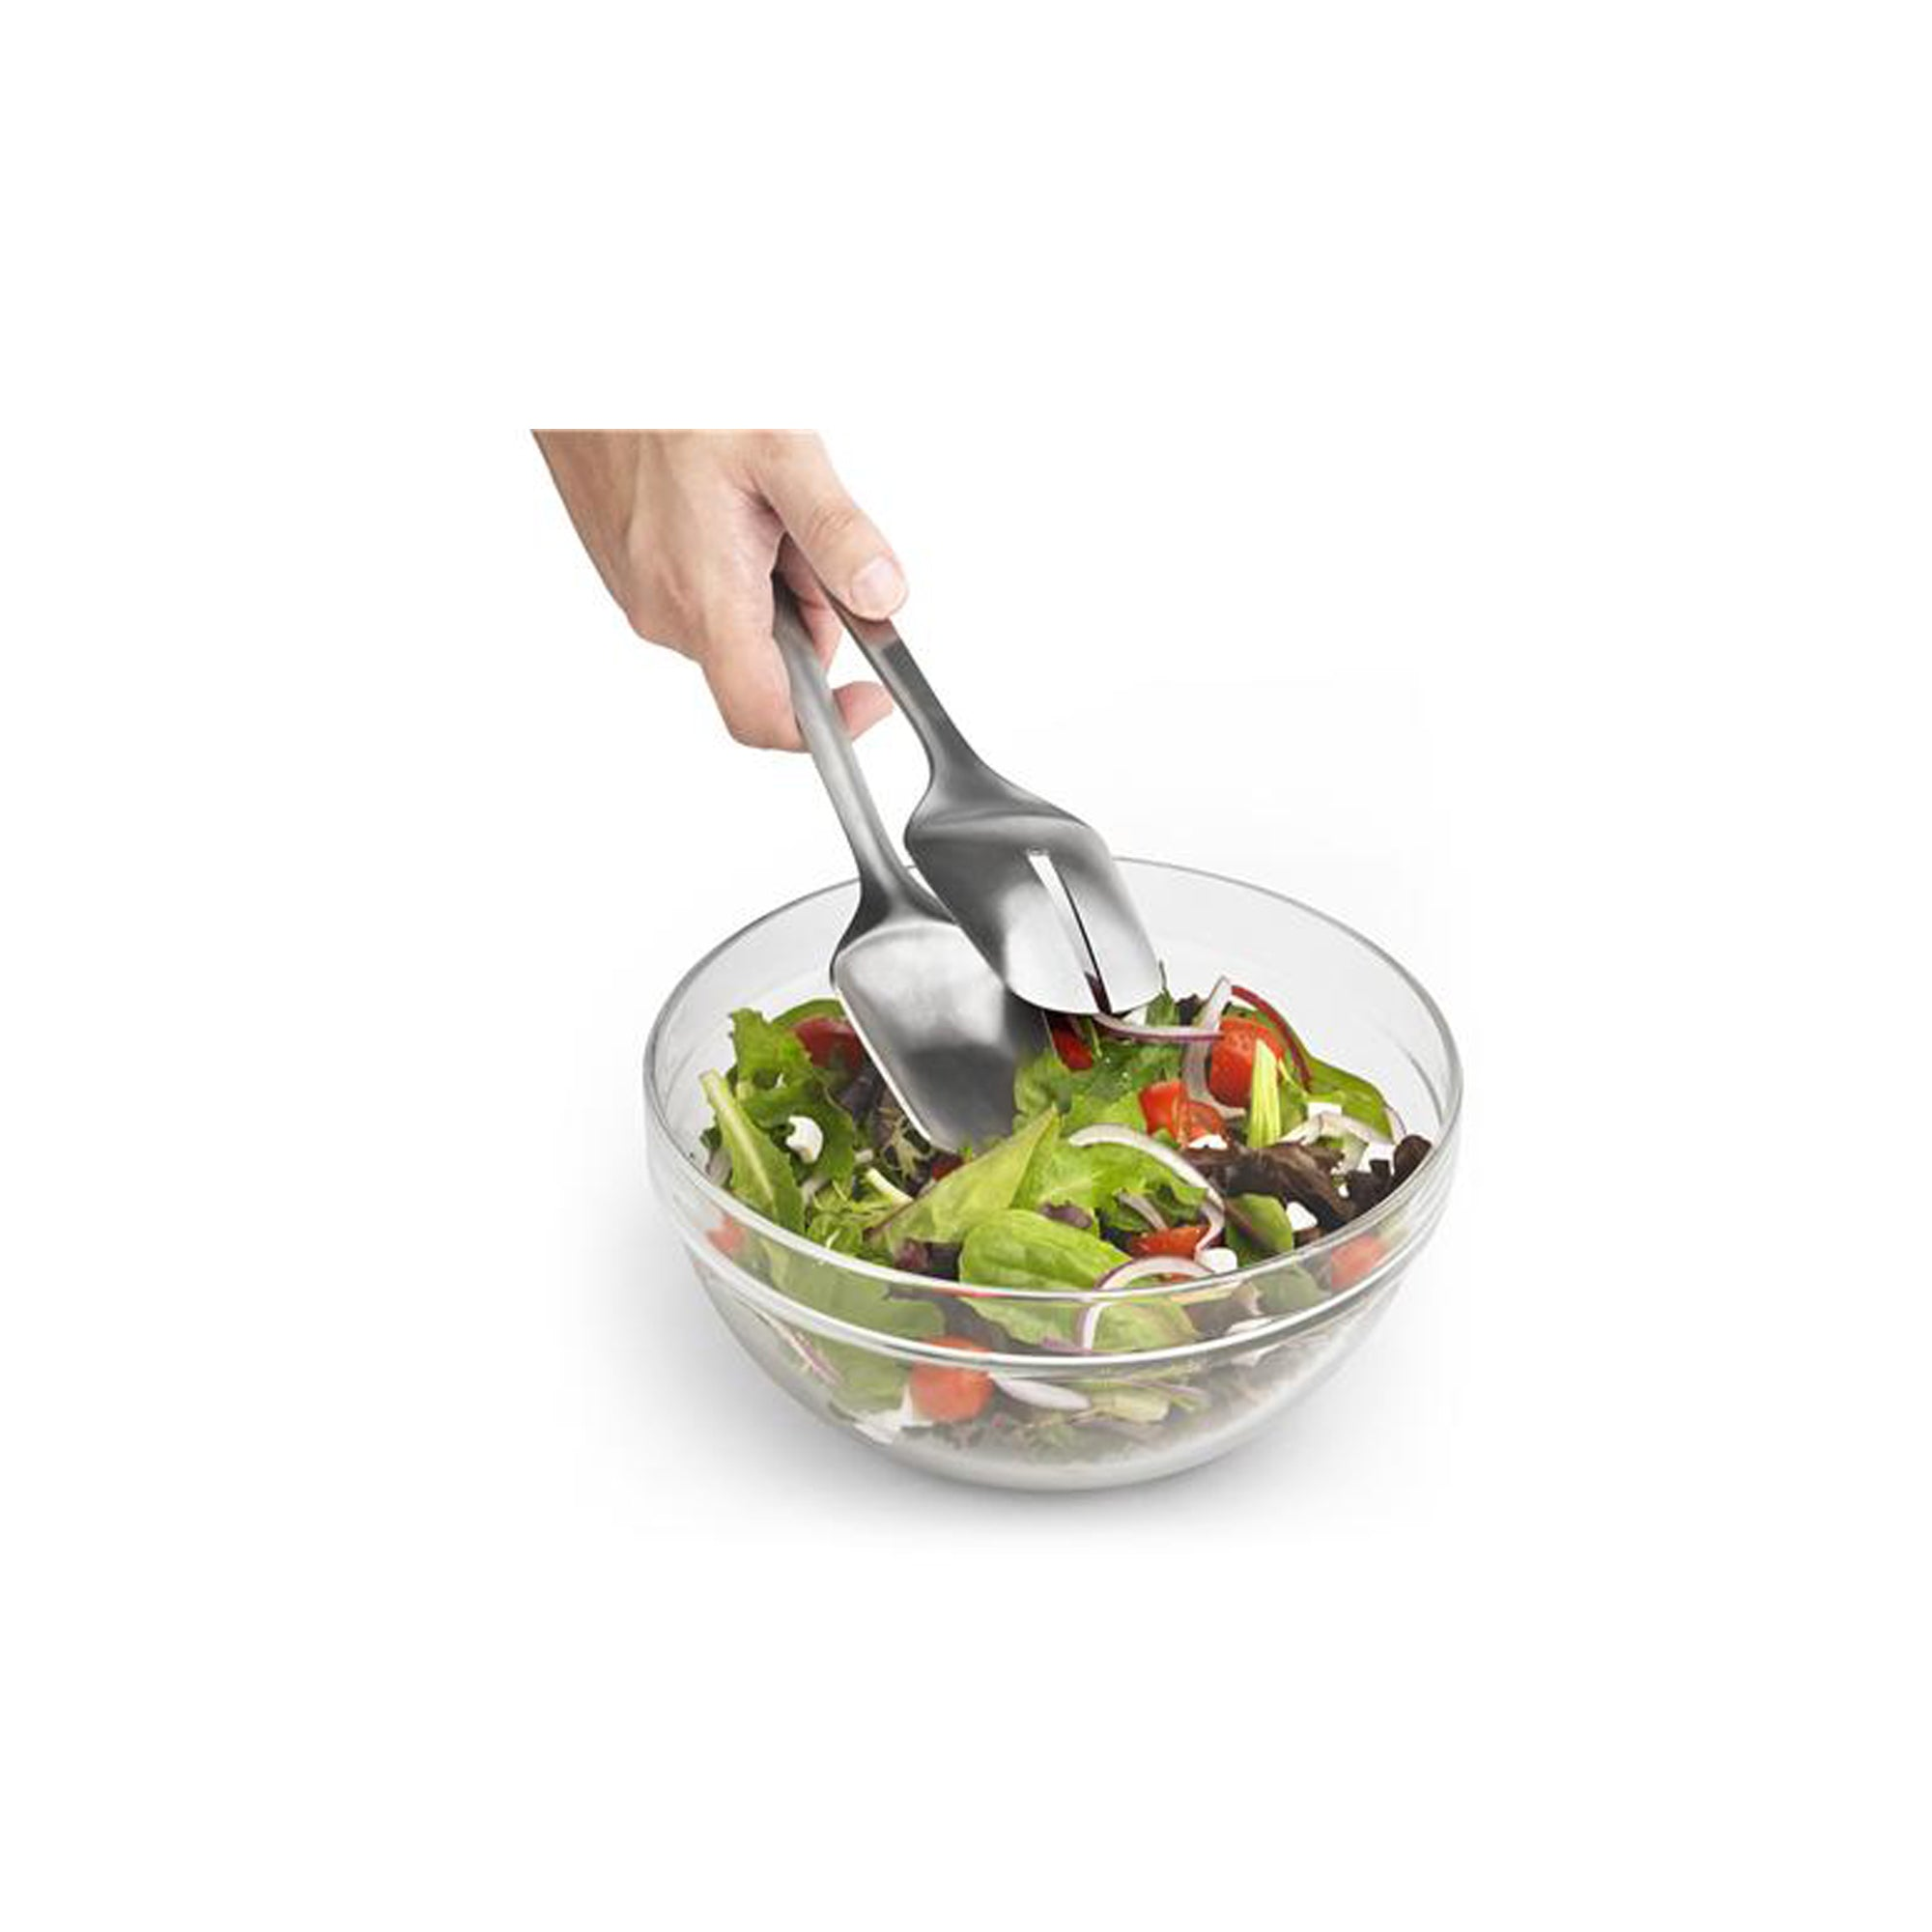 Stainless Steel Salad Tongs